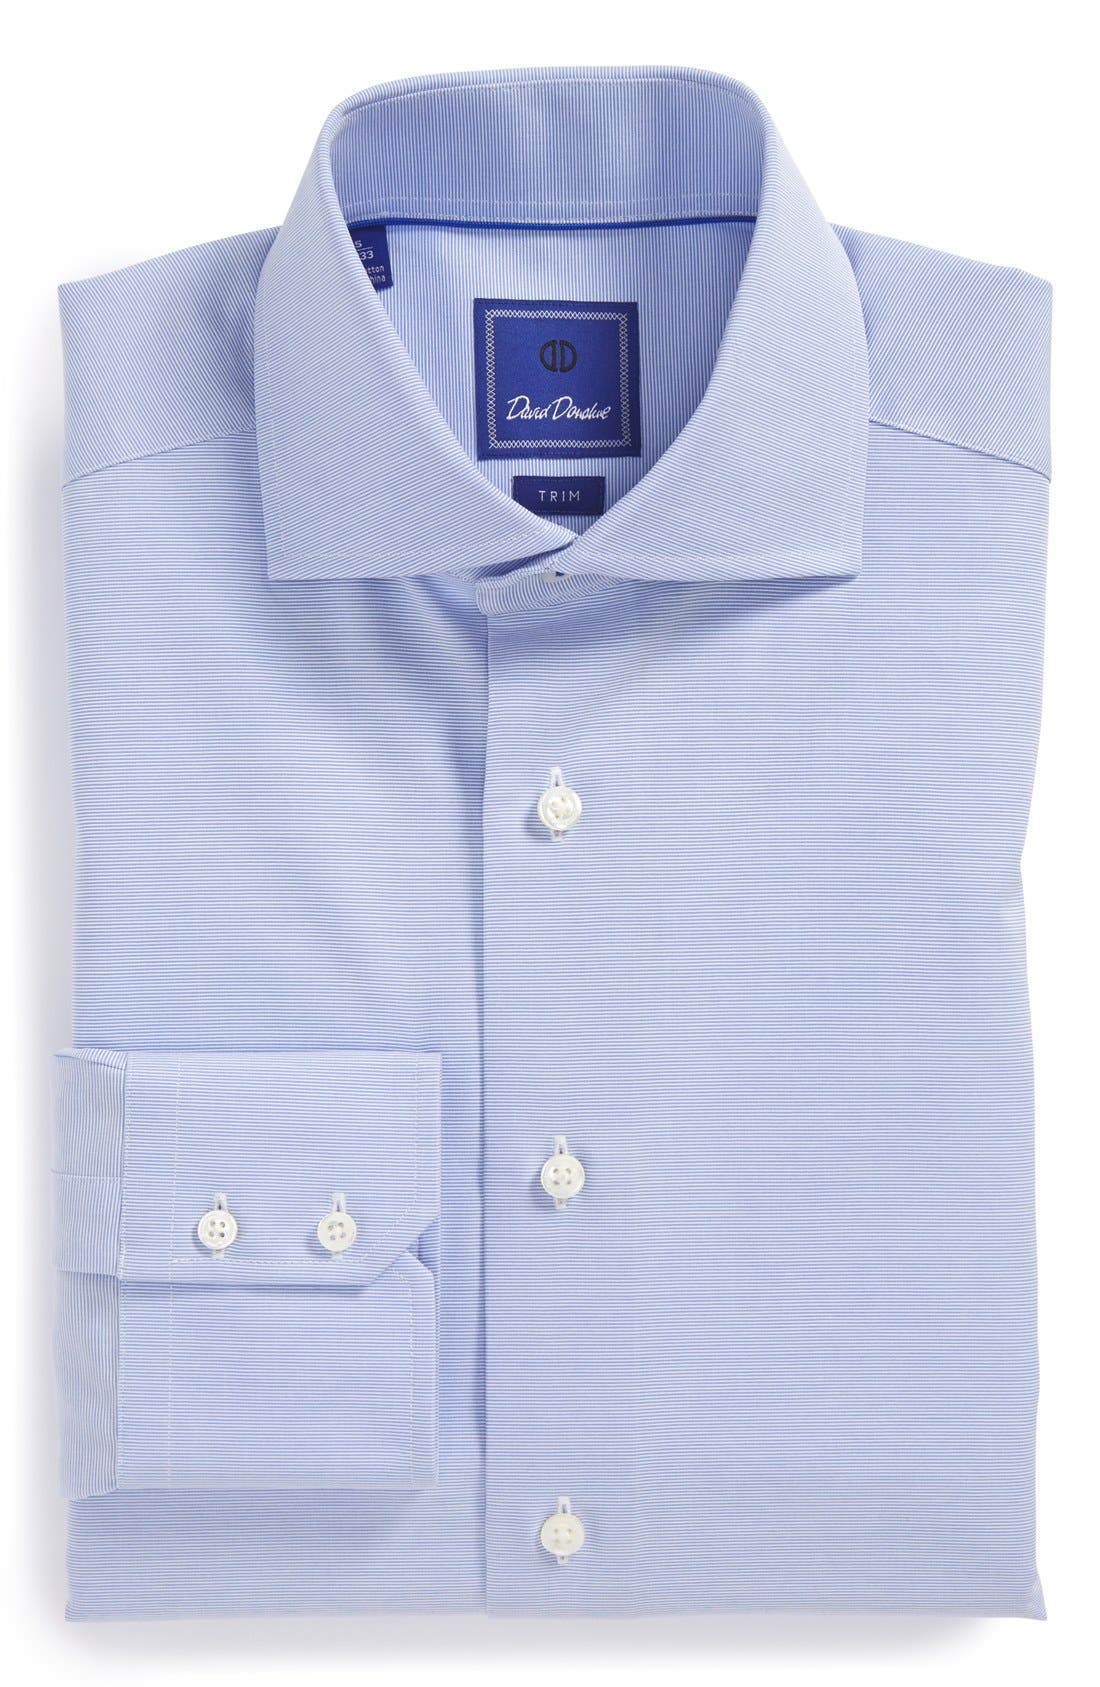 DAVID DONAHUE 'Royal' Trim Fit Solid Dress Shirt